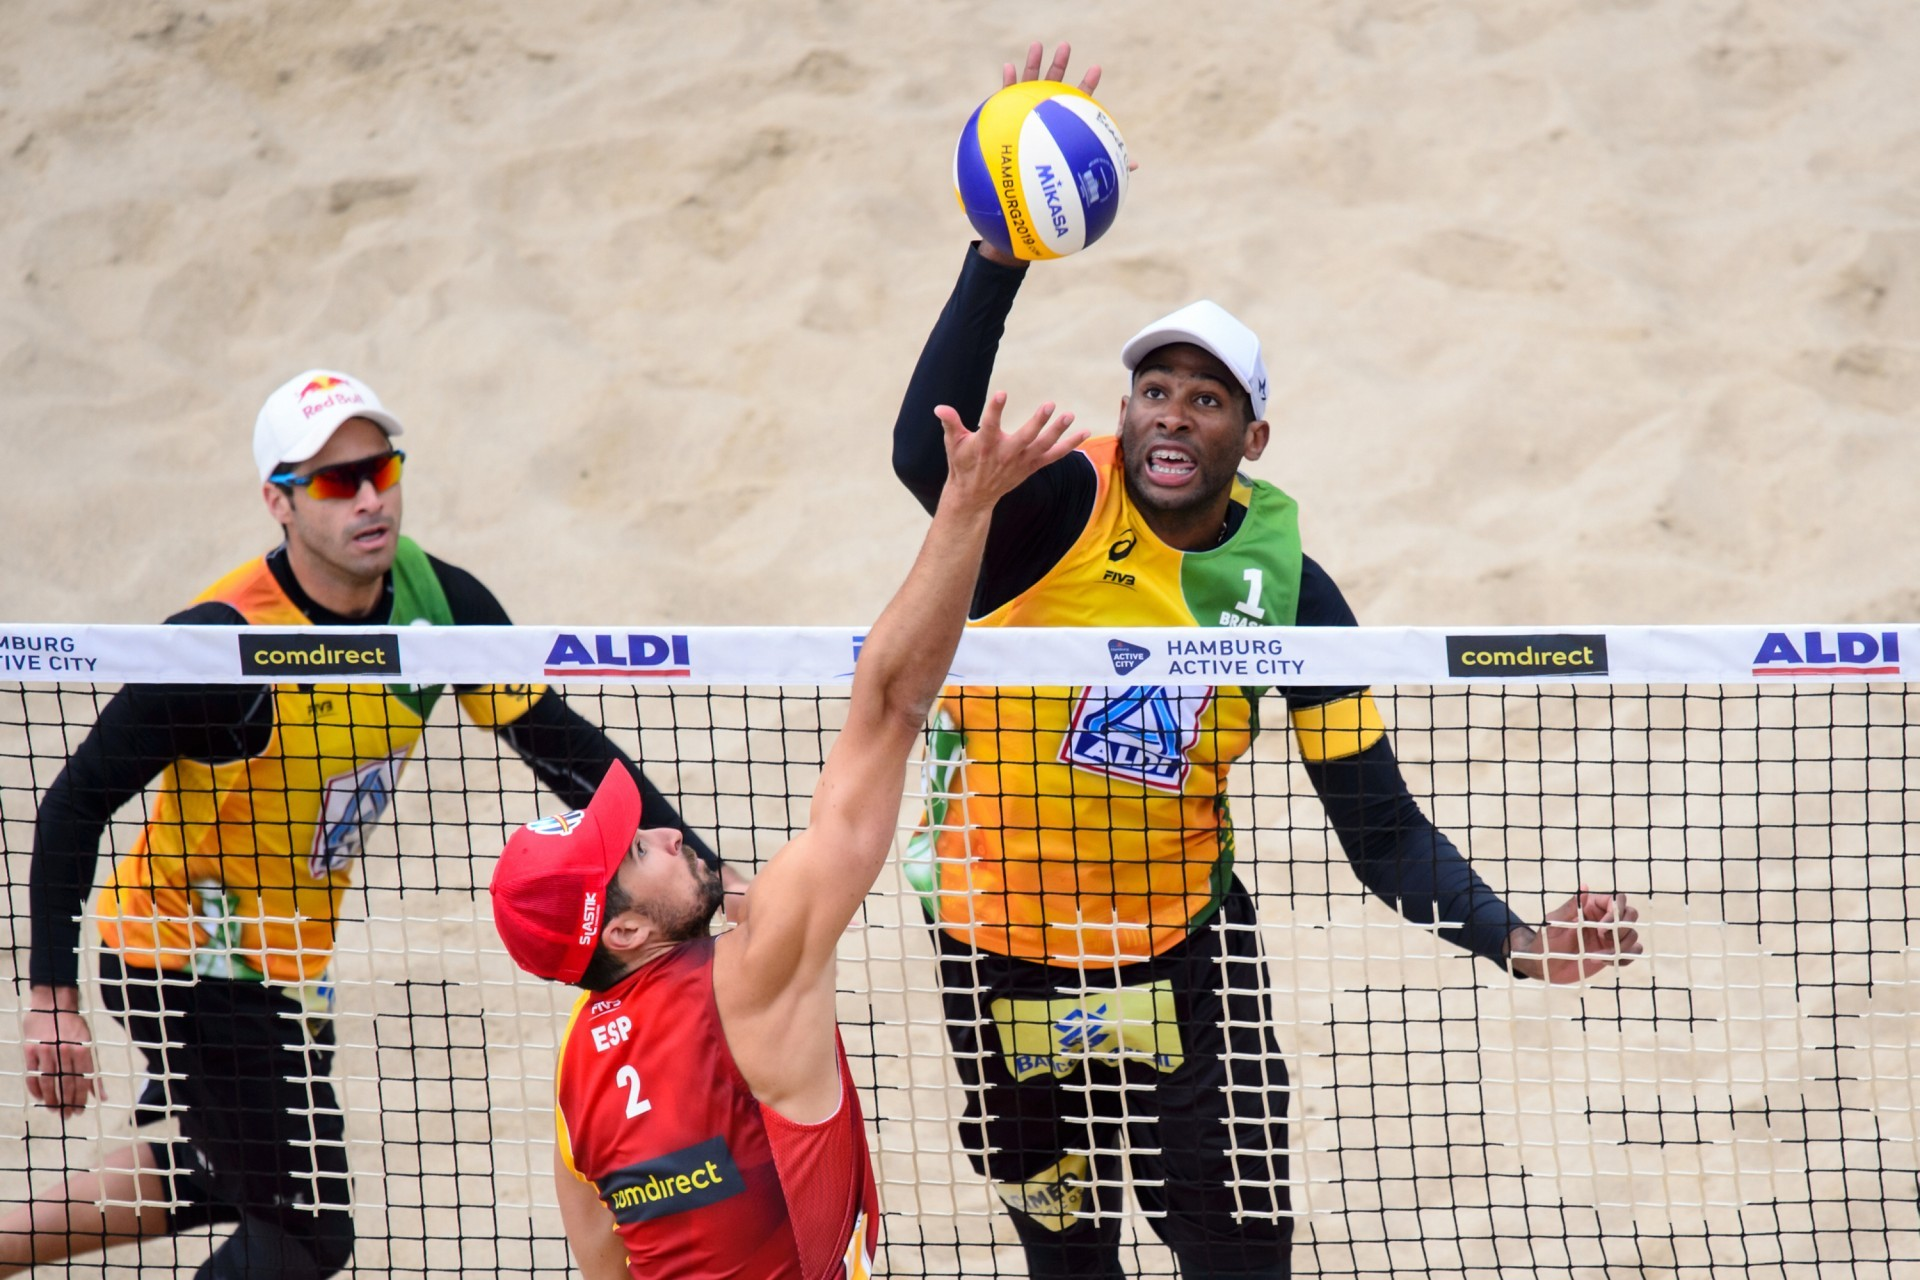 Evandro's reach is a massive advantage at the net